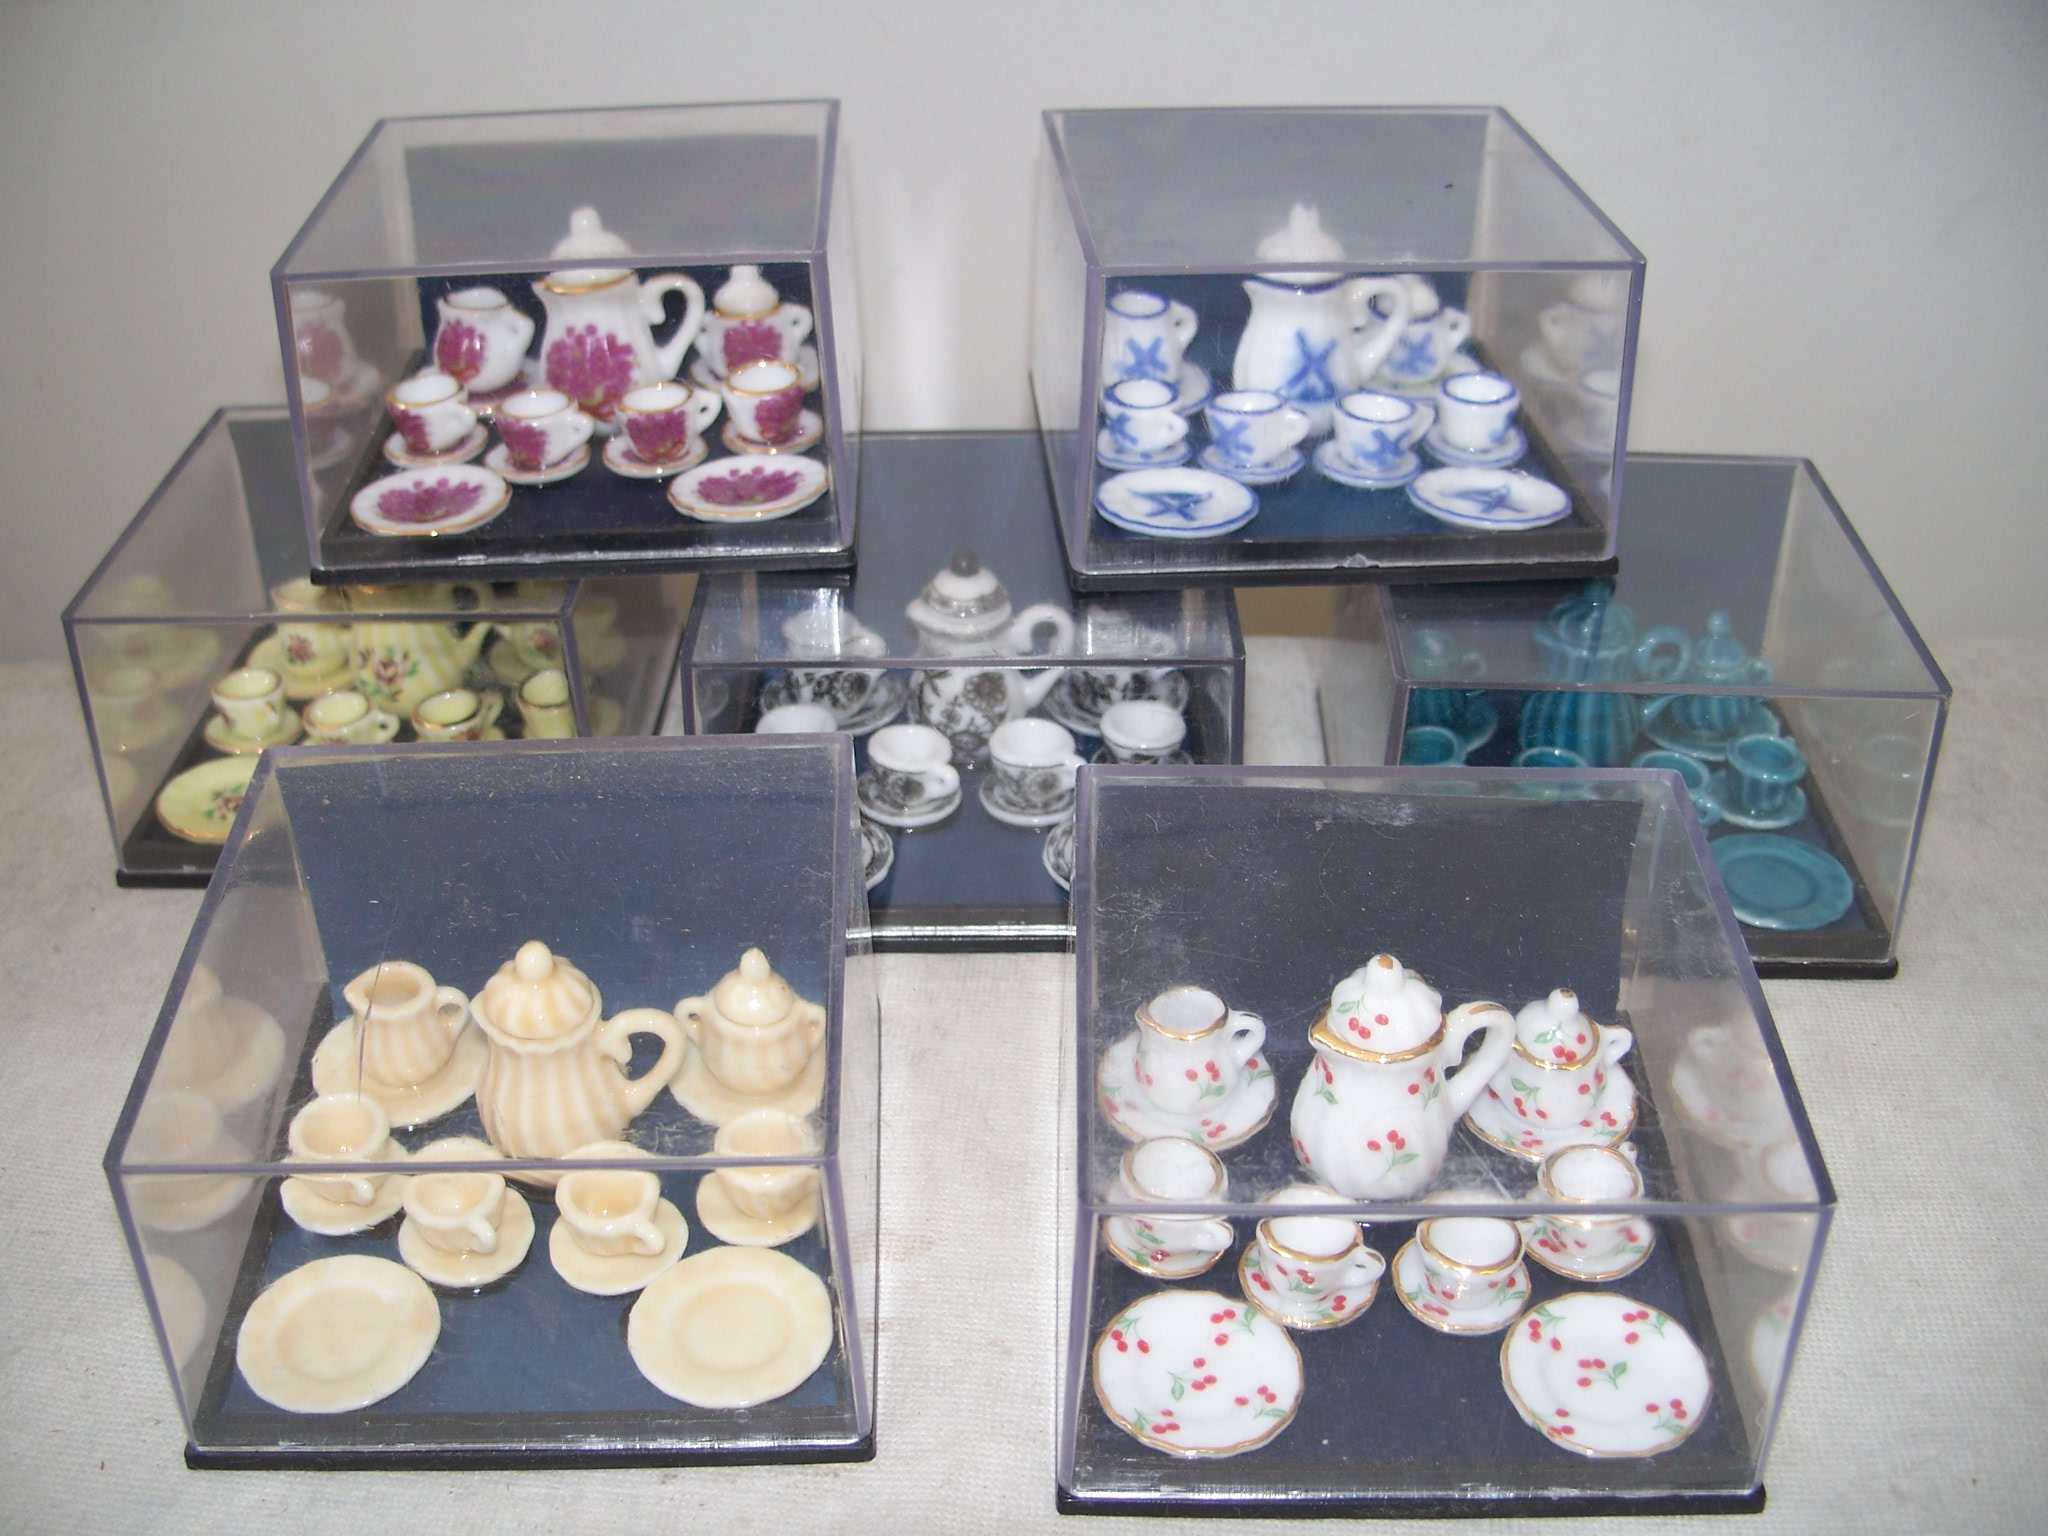 17 Piece Porcelain Tes Sets